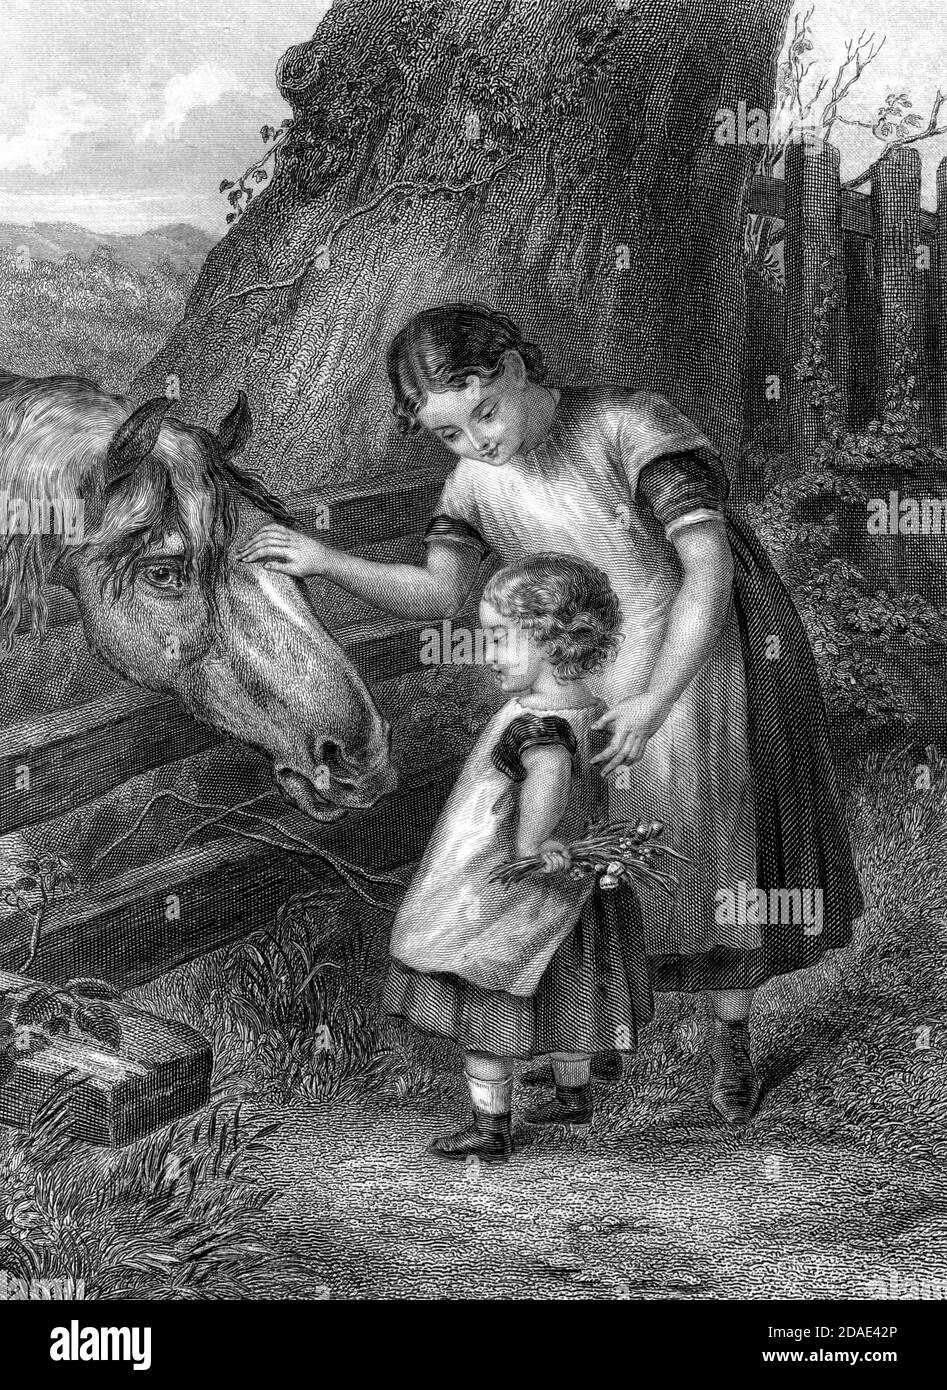 Want of Confidence Children approach a horse with fear and caution from Godey's Lady's Book and Magazine, Marc, 1864, Volume LXIX, (Volume 69), Philadelphia, Louis A. Godey, Sarah Josepha Hale, Stock Photo